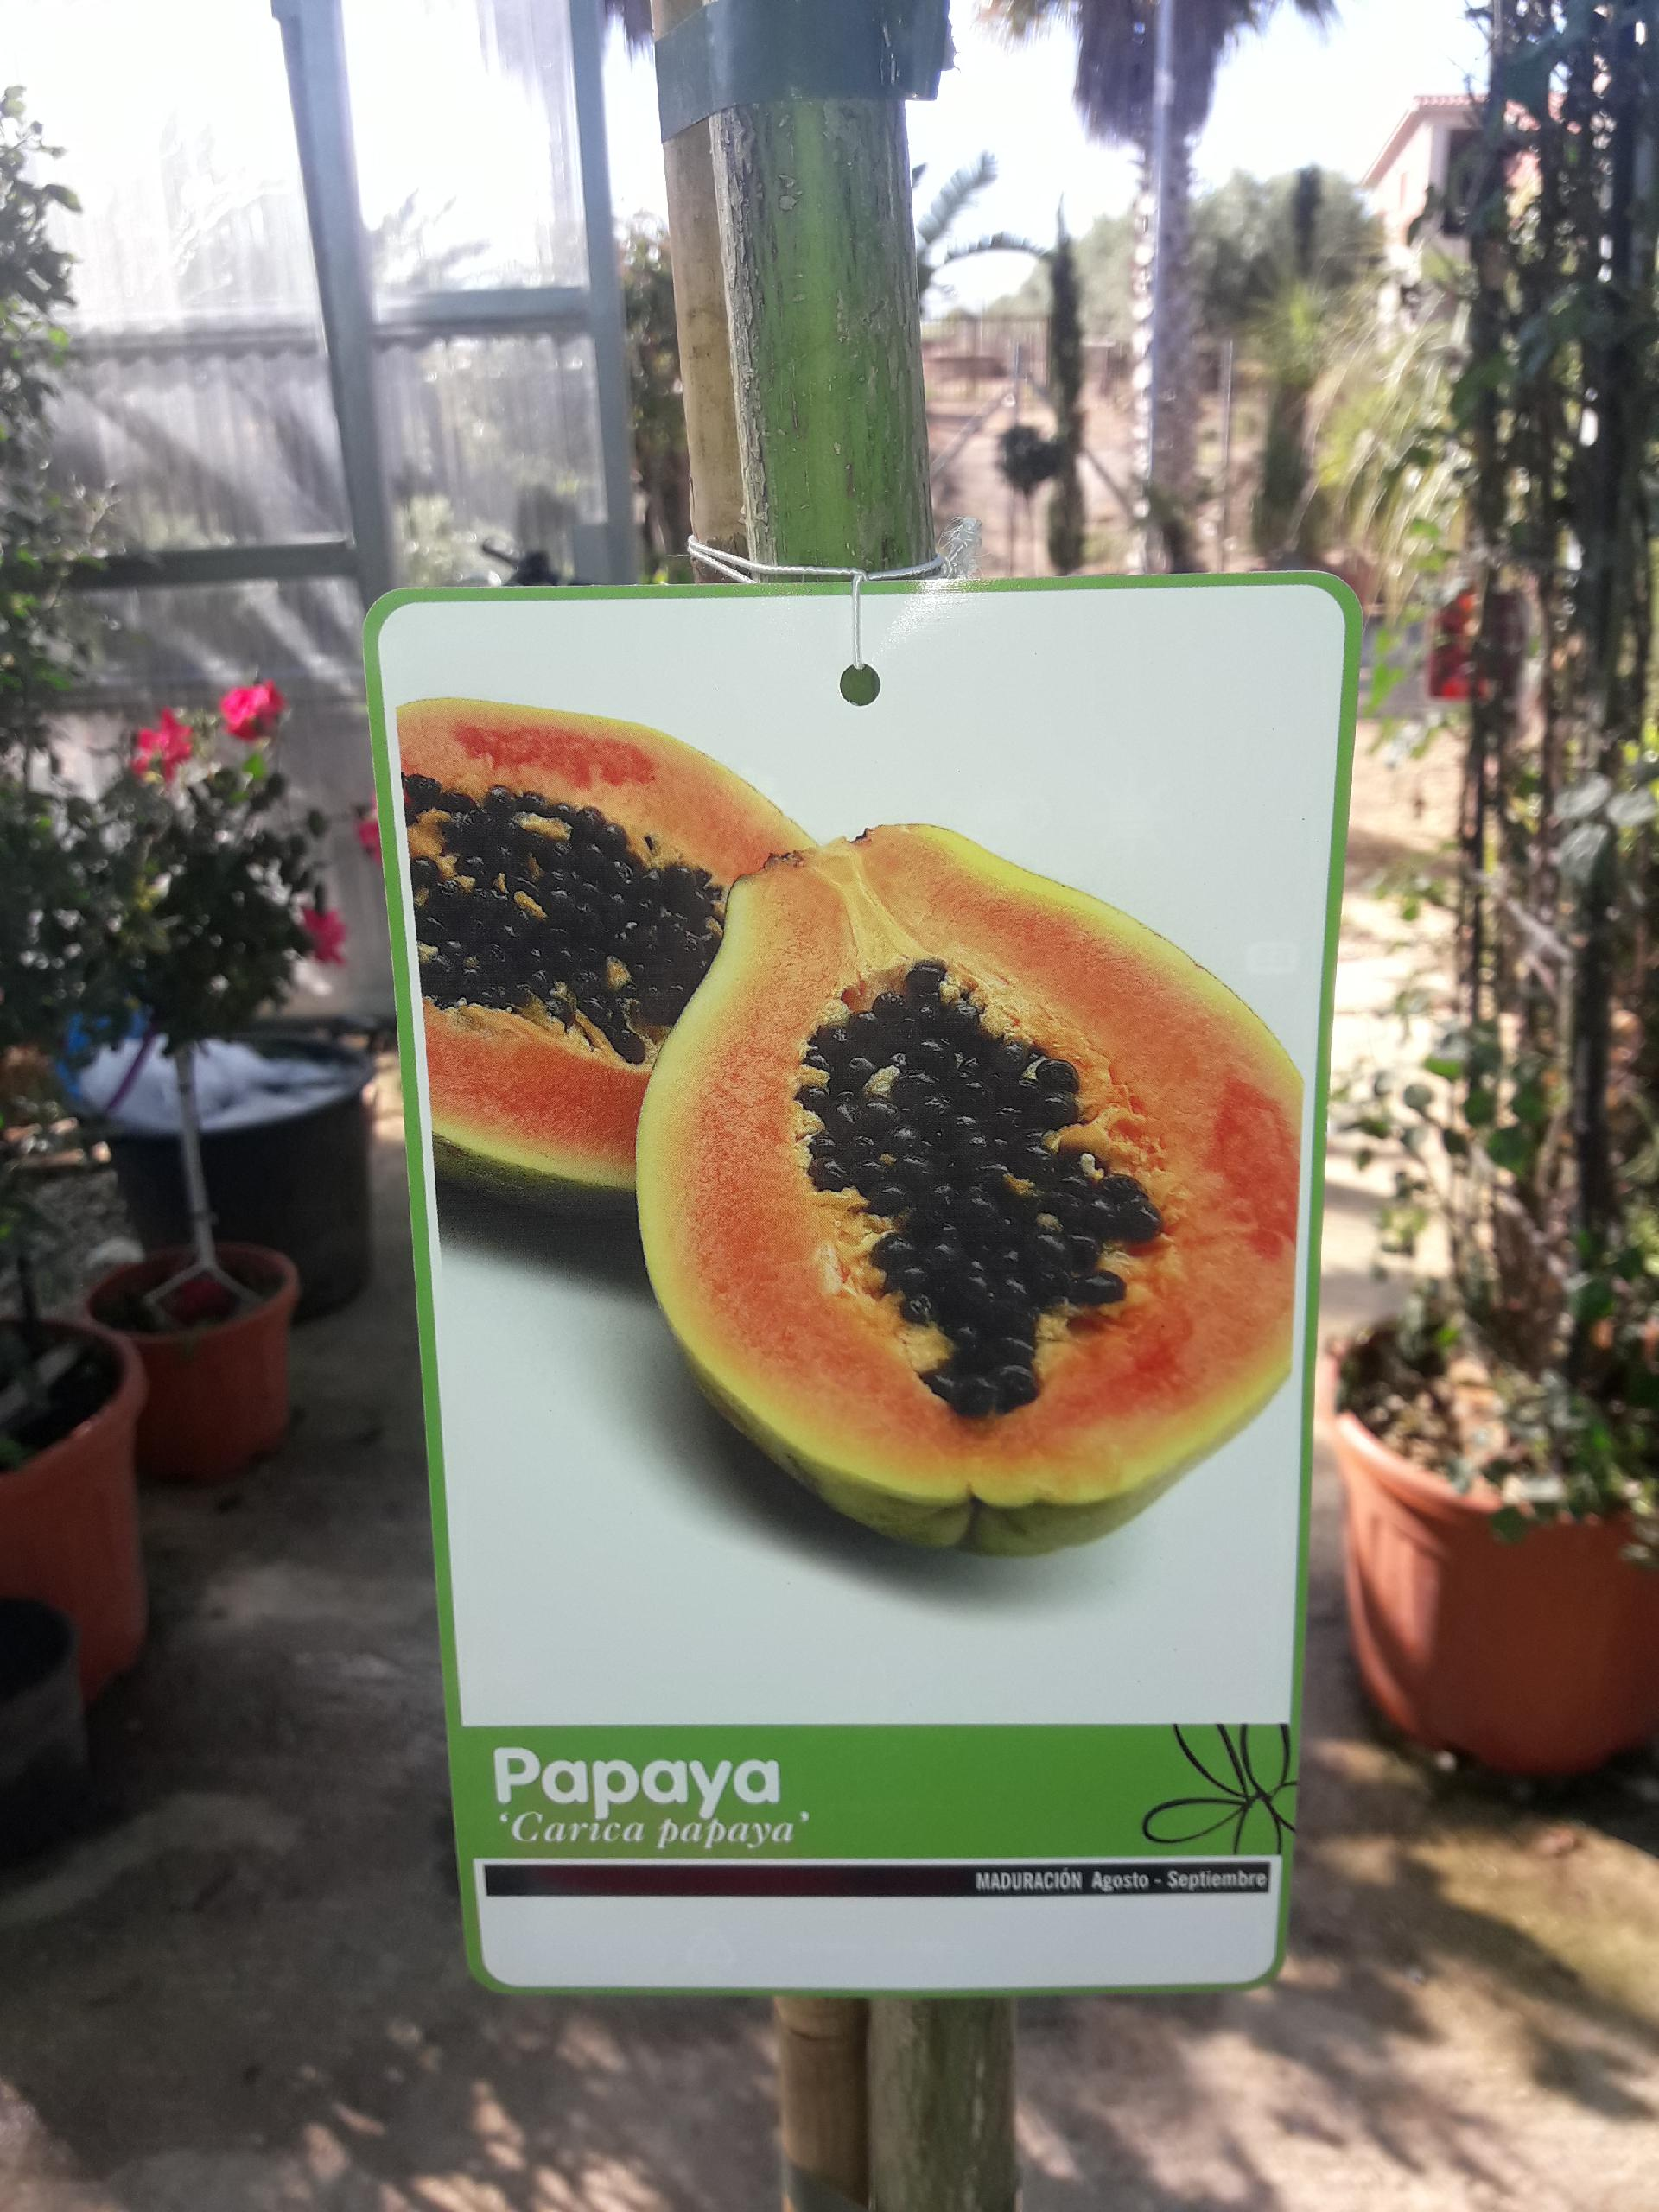 Papaya in Vaso  Diverse Dimensioni